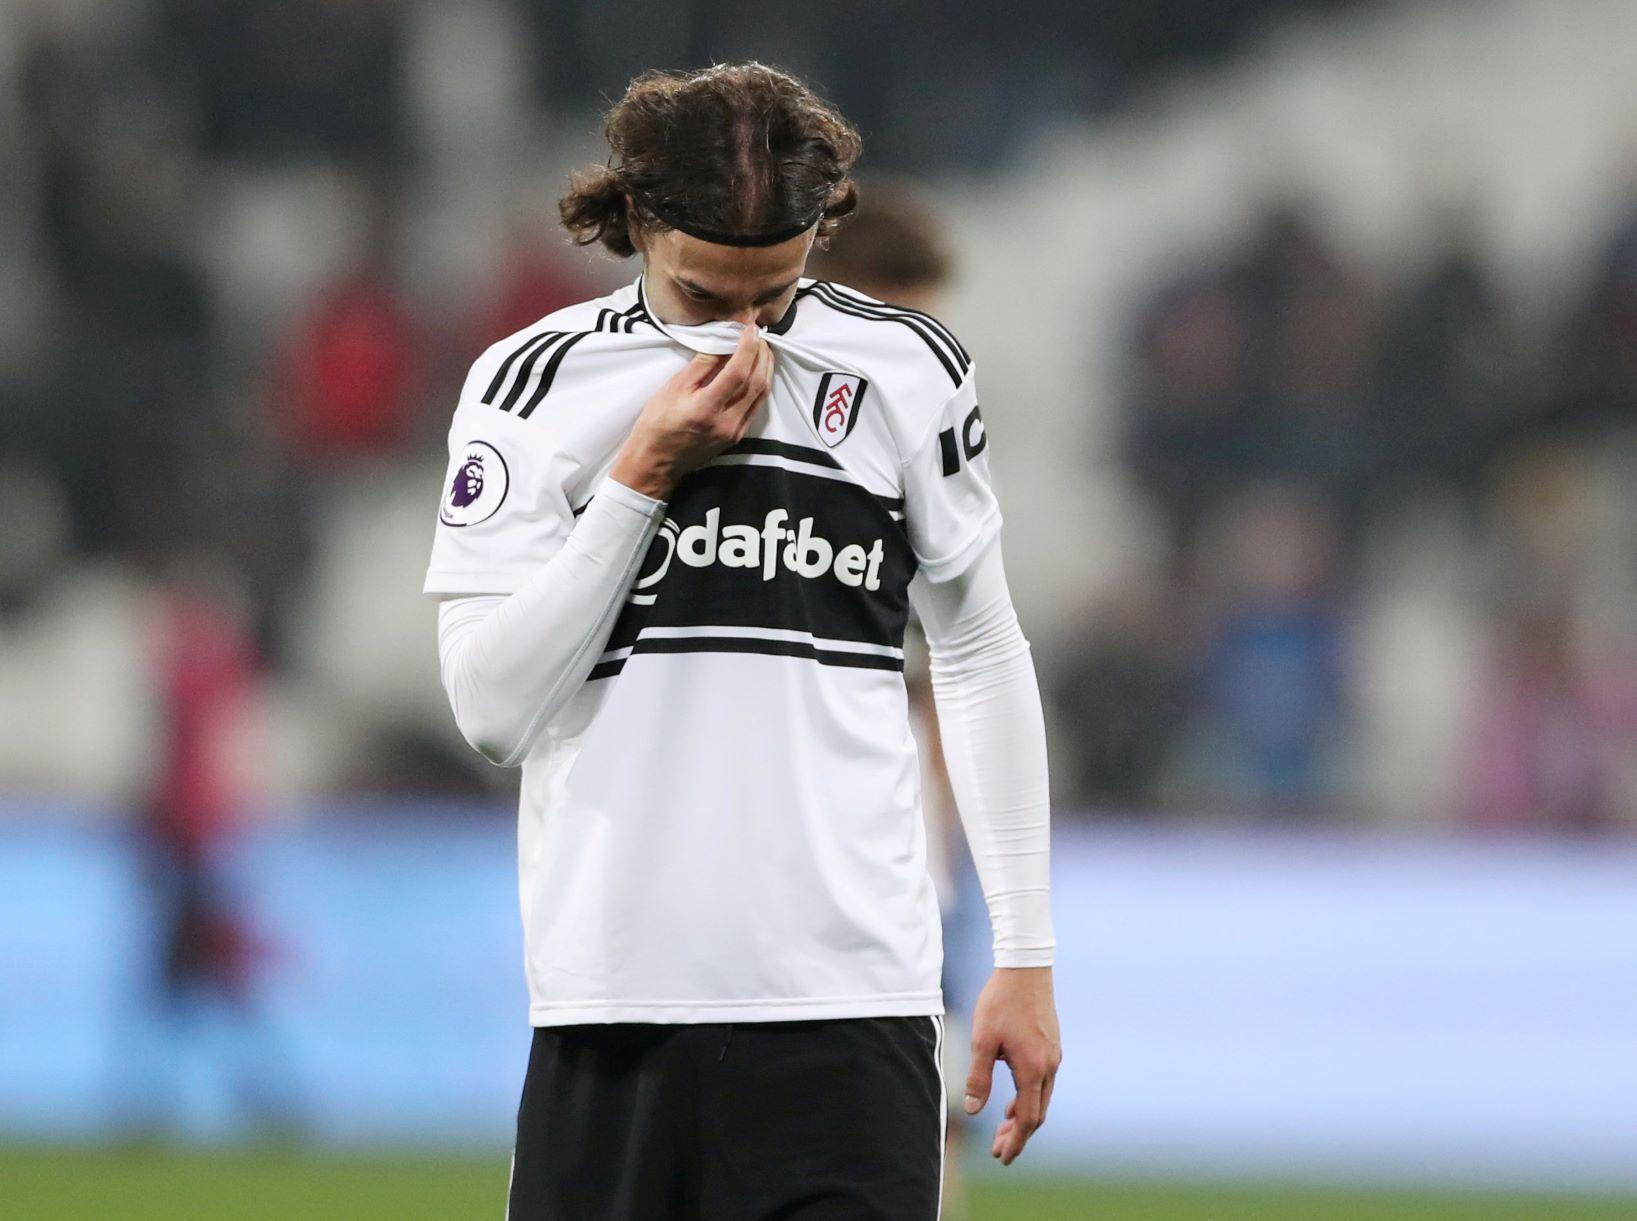 Markovic Targets Belgium Move After Fulham Failure